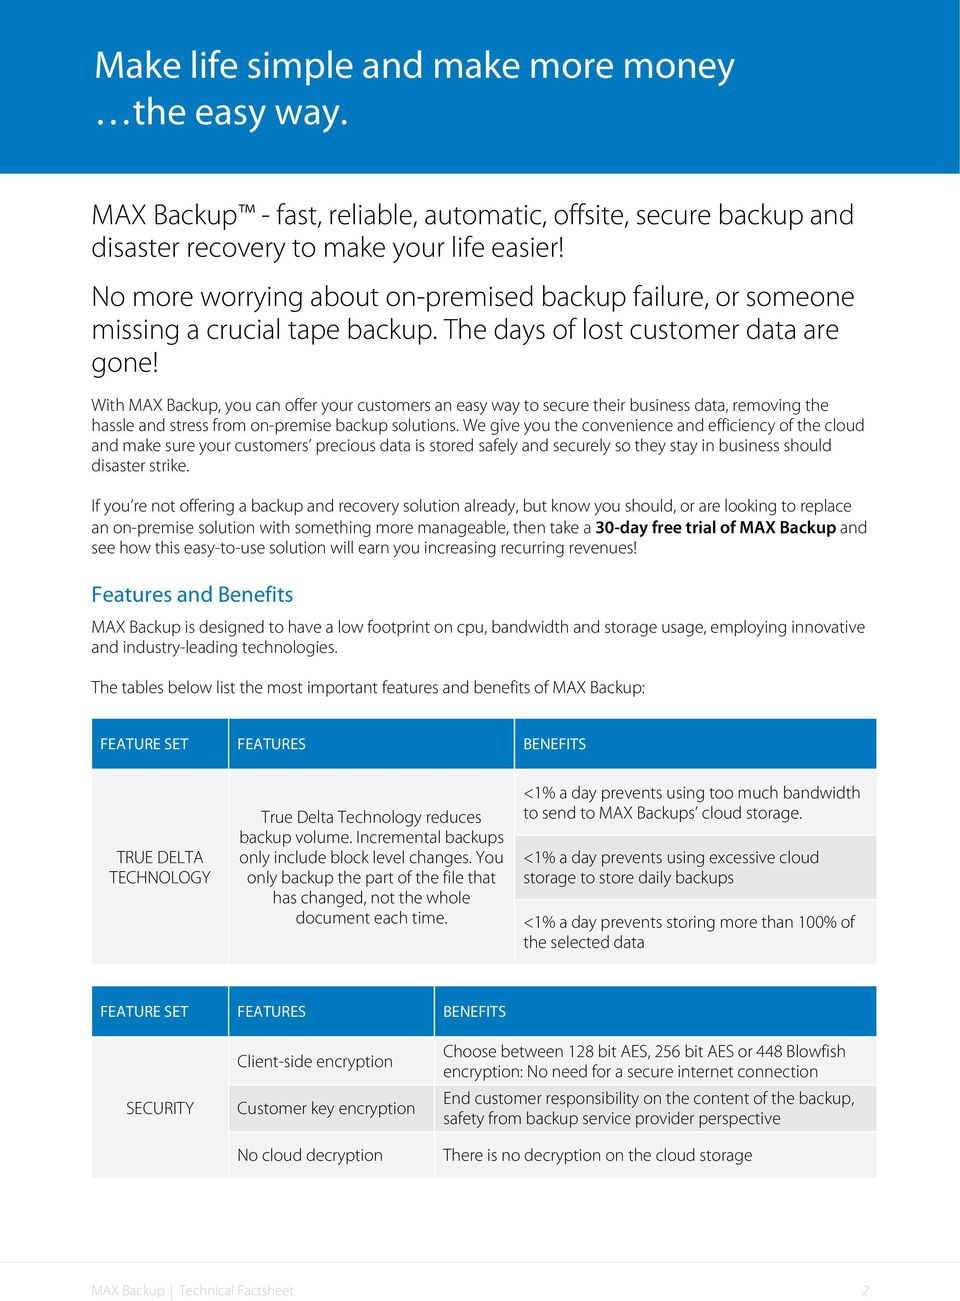 With MAX Backup, you can offer your customers an easy way to secure their business data, removing the hassle and stress from on-premise backup solutions.